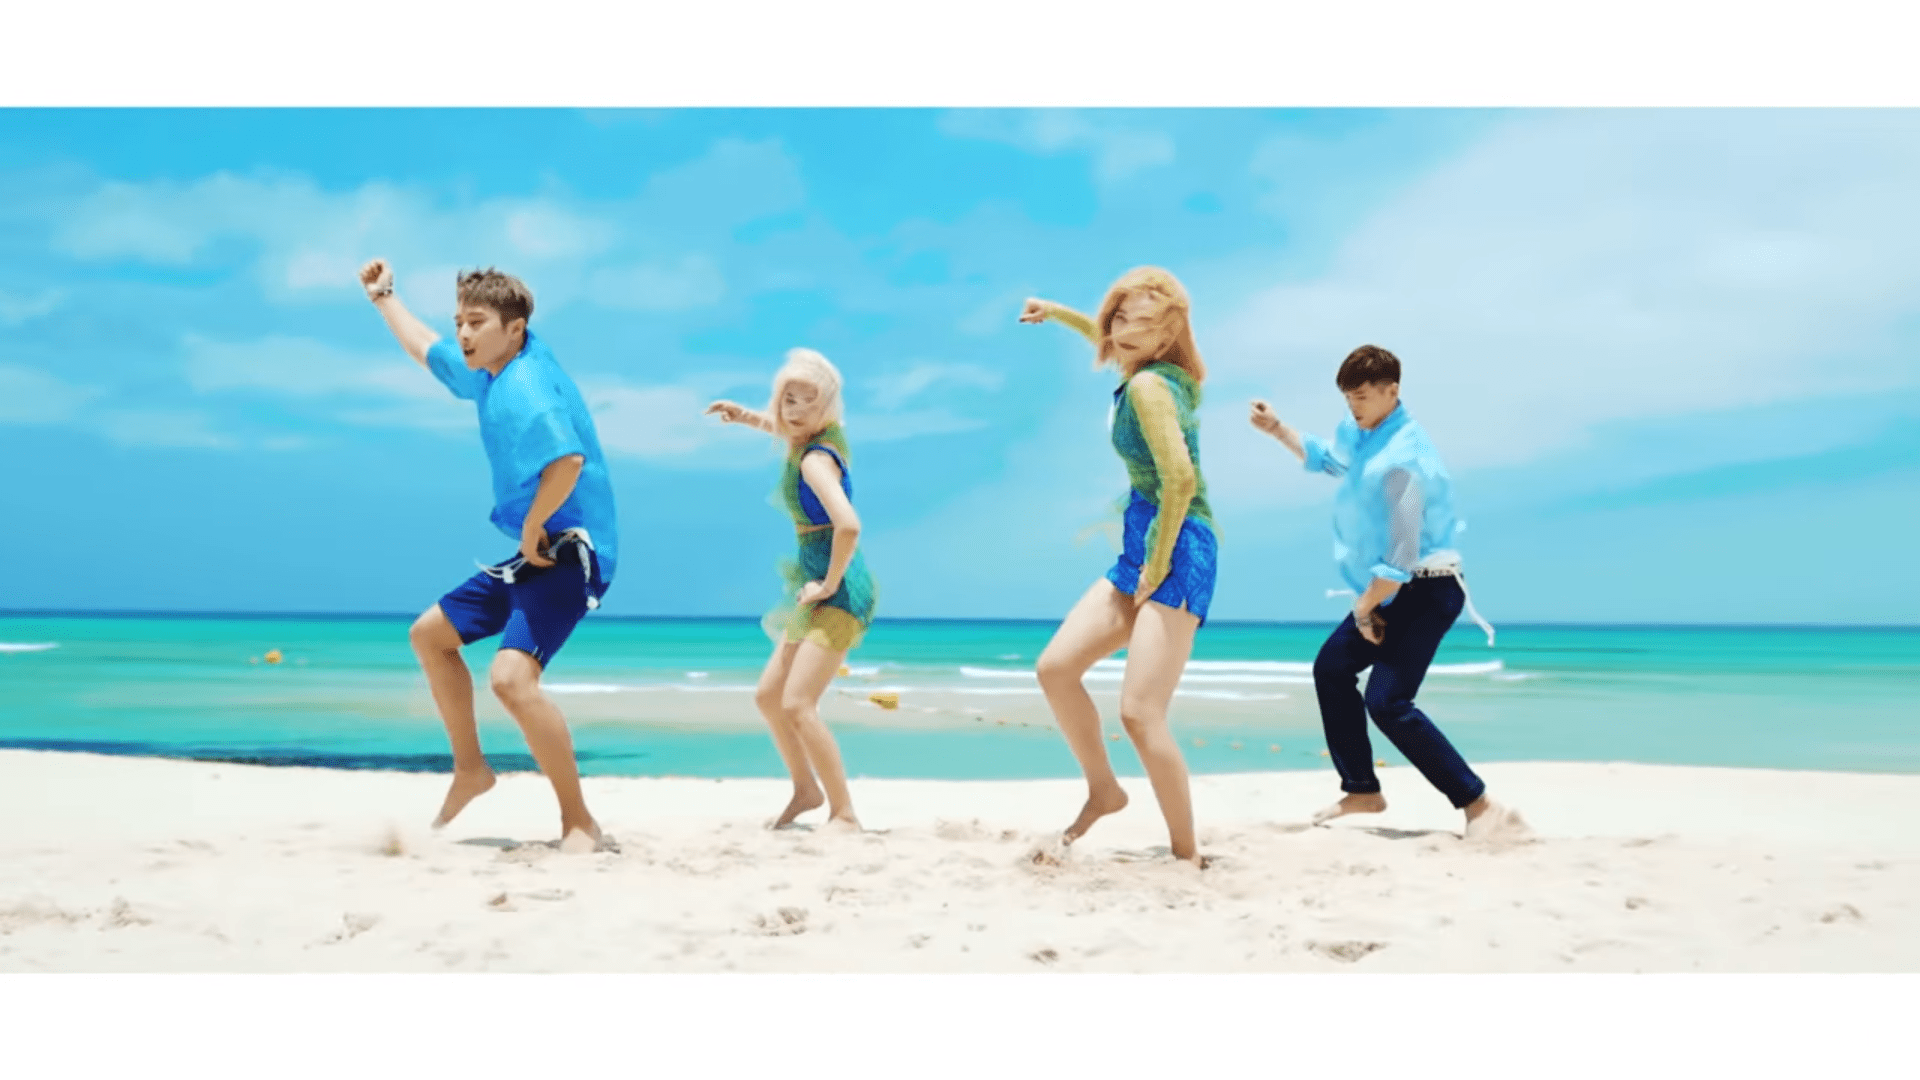 """WATCH: KARD Enjoys Their Summer In Colorful MV For """"Ride On The Wind"""""""